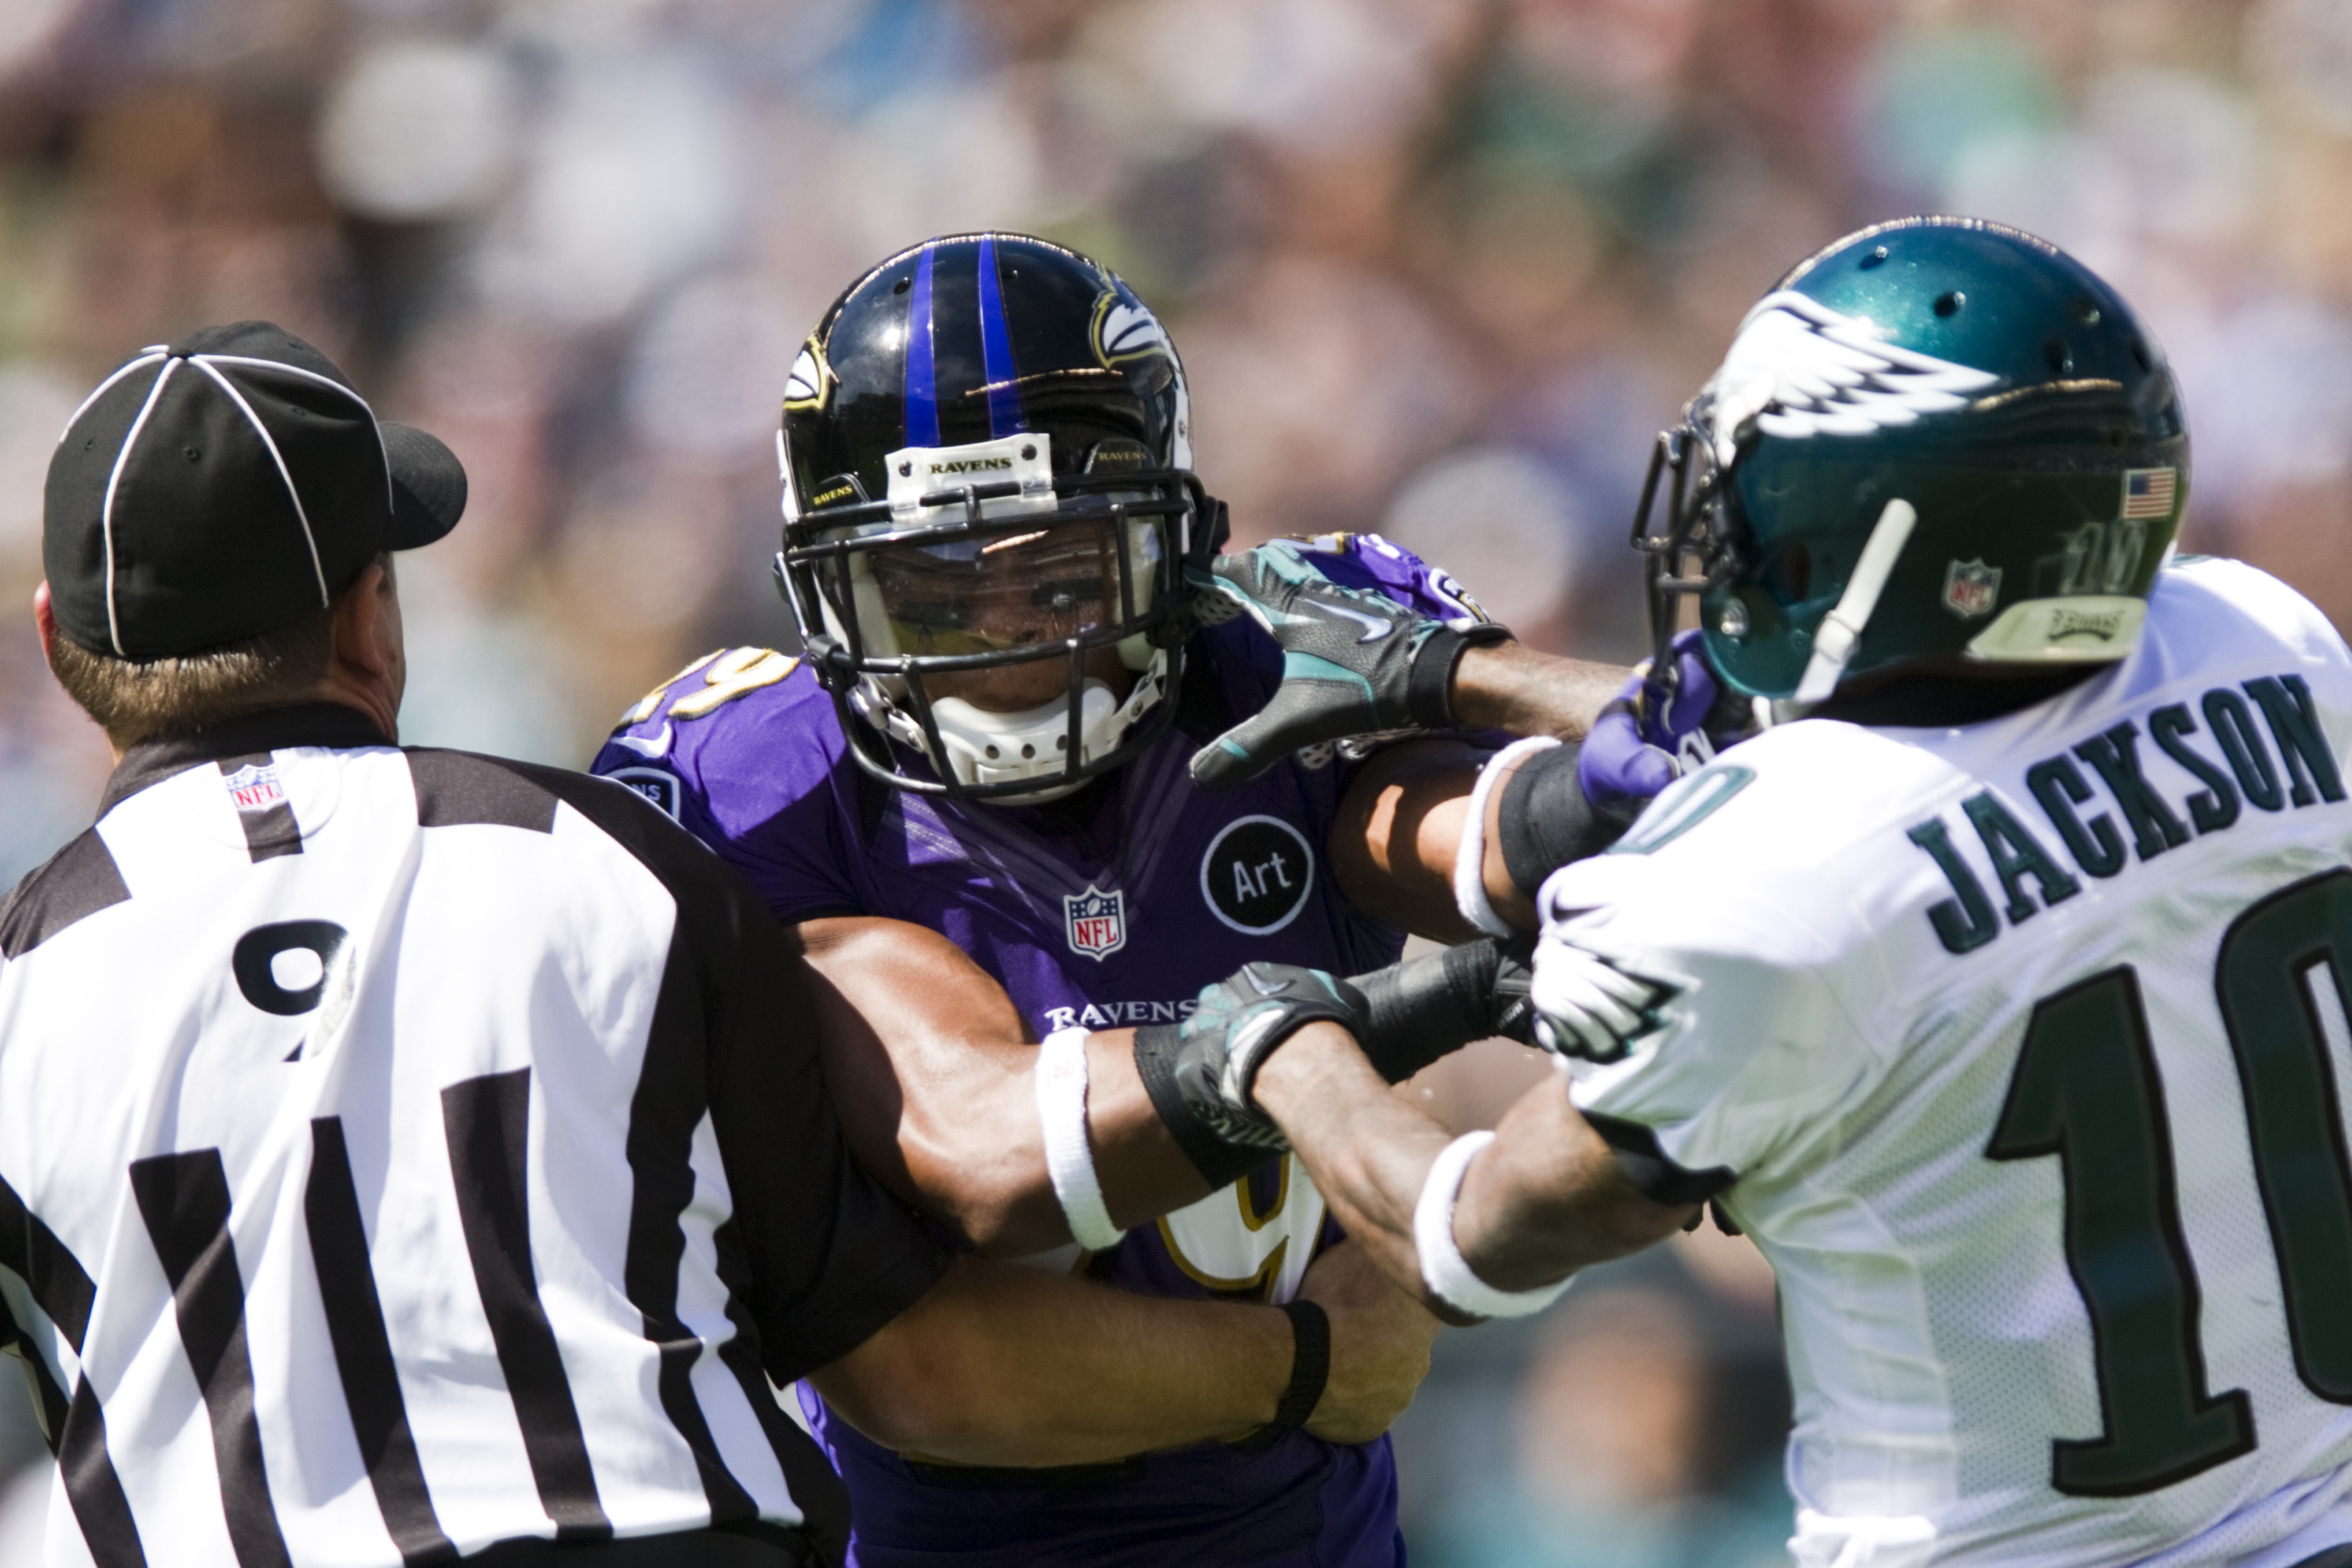 Sep 16, 2012; Philadelphia, PA, USA; Baltimore Ravens cornerback Cary Williams (29) and Philadelphia Eagles wide receiver DeSean Jackson (10) scrap during the second quarter at Lincoln Financial Field. Mandatory Credit: Howard Smith-US PRESSWIRE